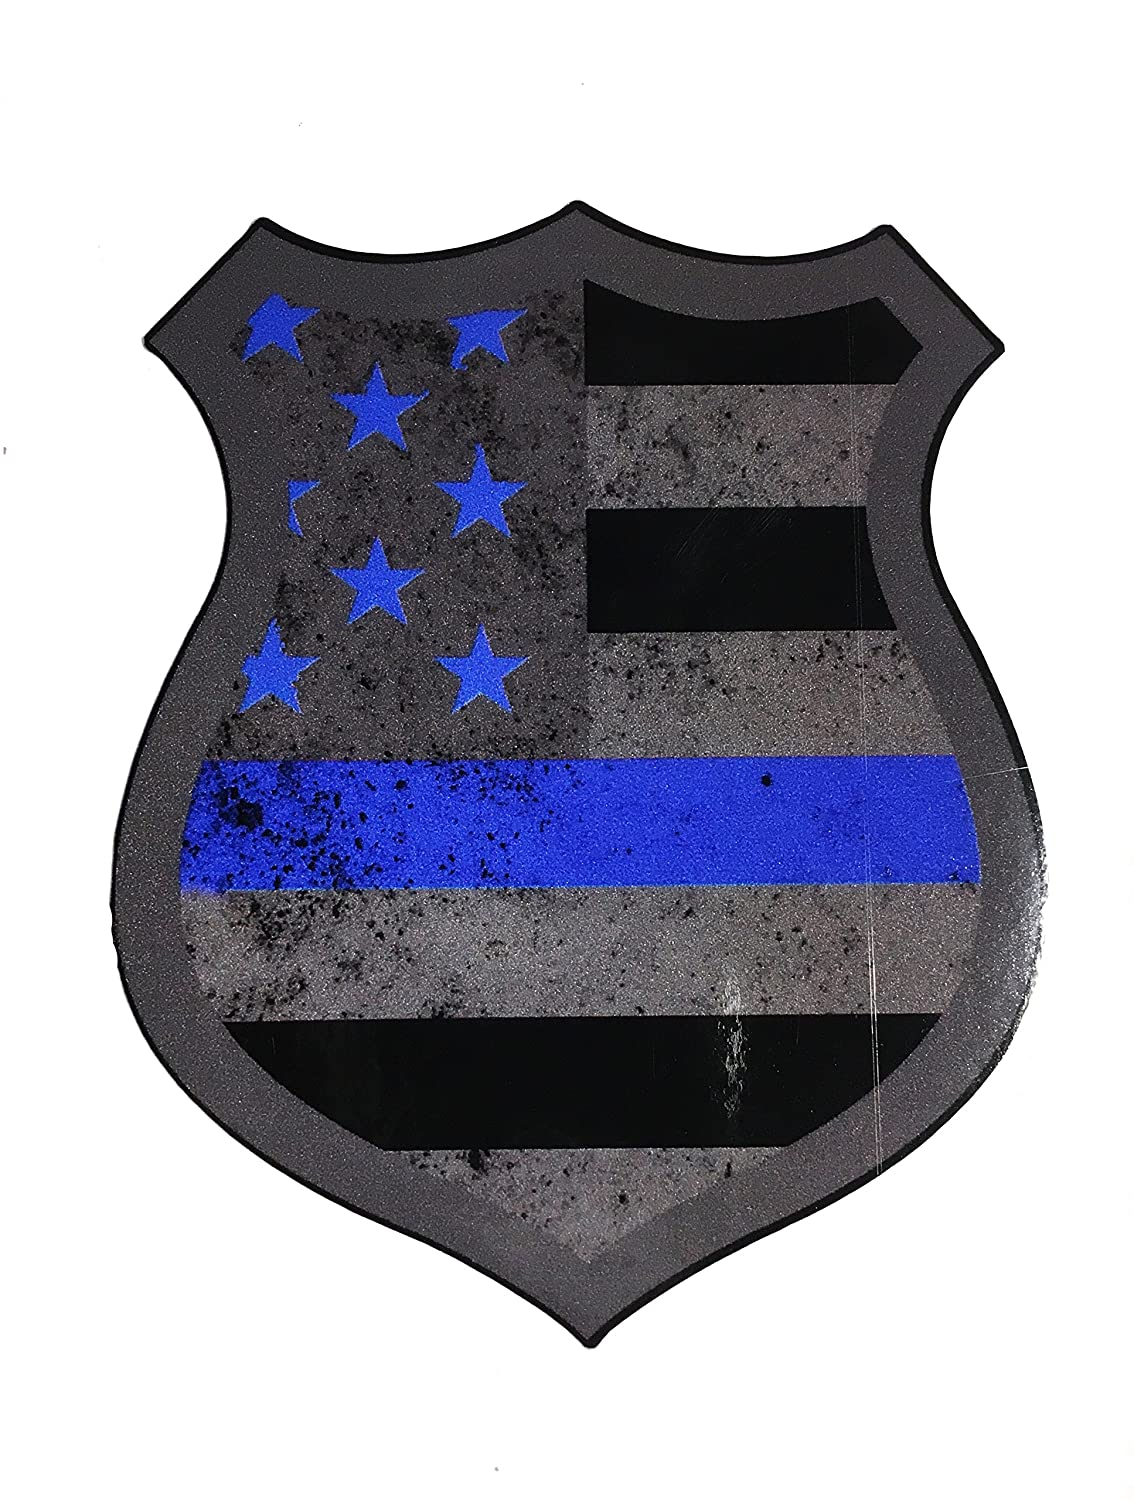 Empire Tactical USA The Tattered Police Thin Blue Line Shield Reflective  Badge Decal Sticker Ultra Us Made 3m Vinyl Brand Die Cut, 3 5 x 3 inch